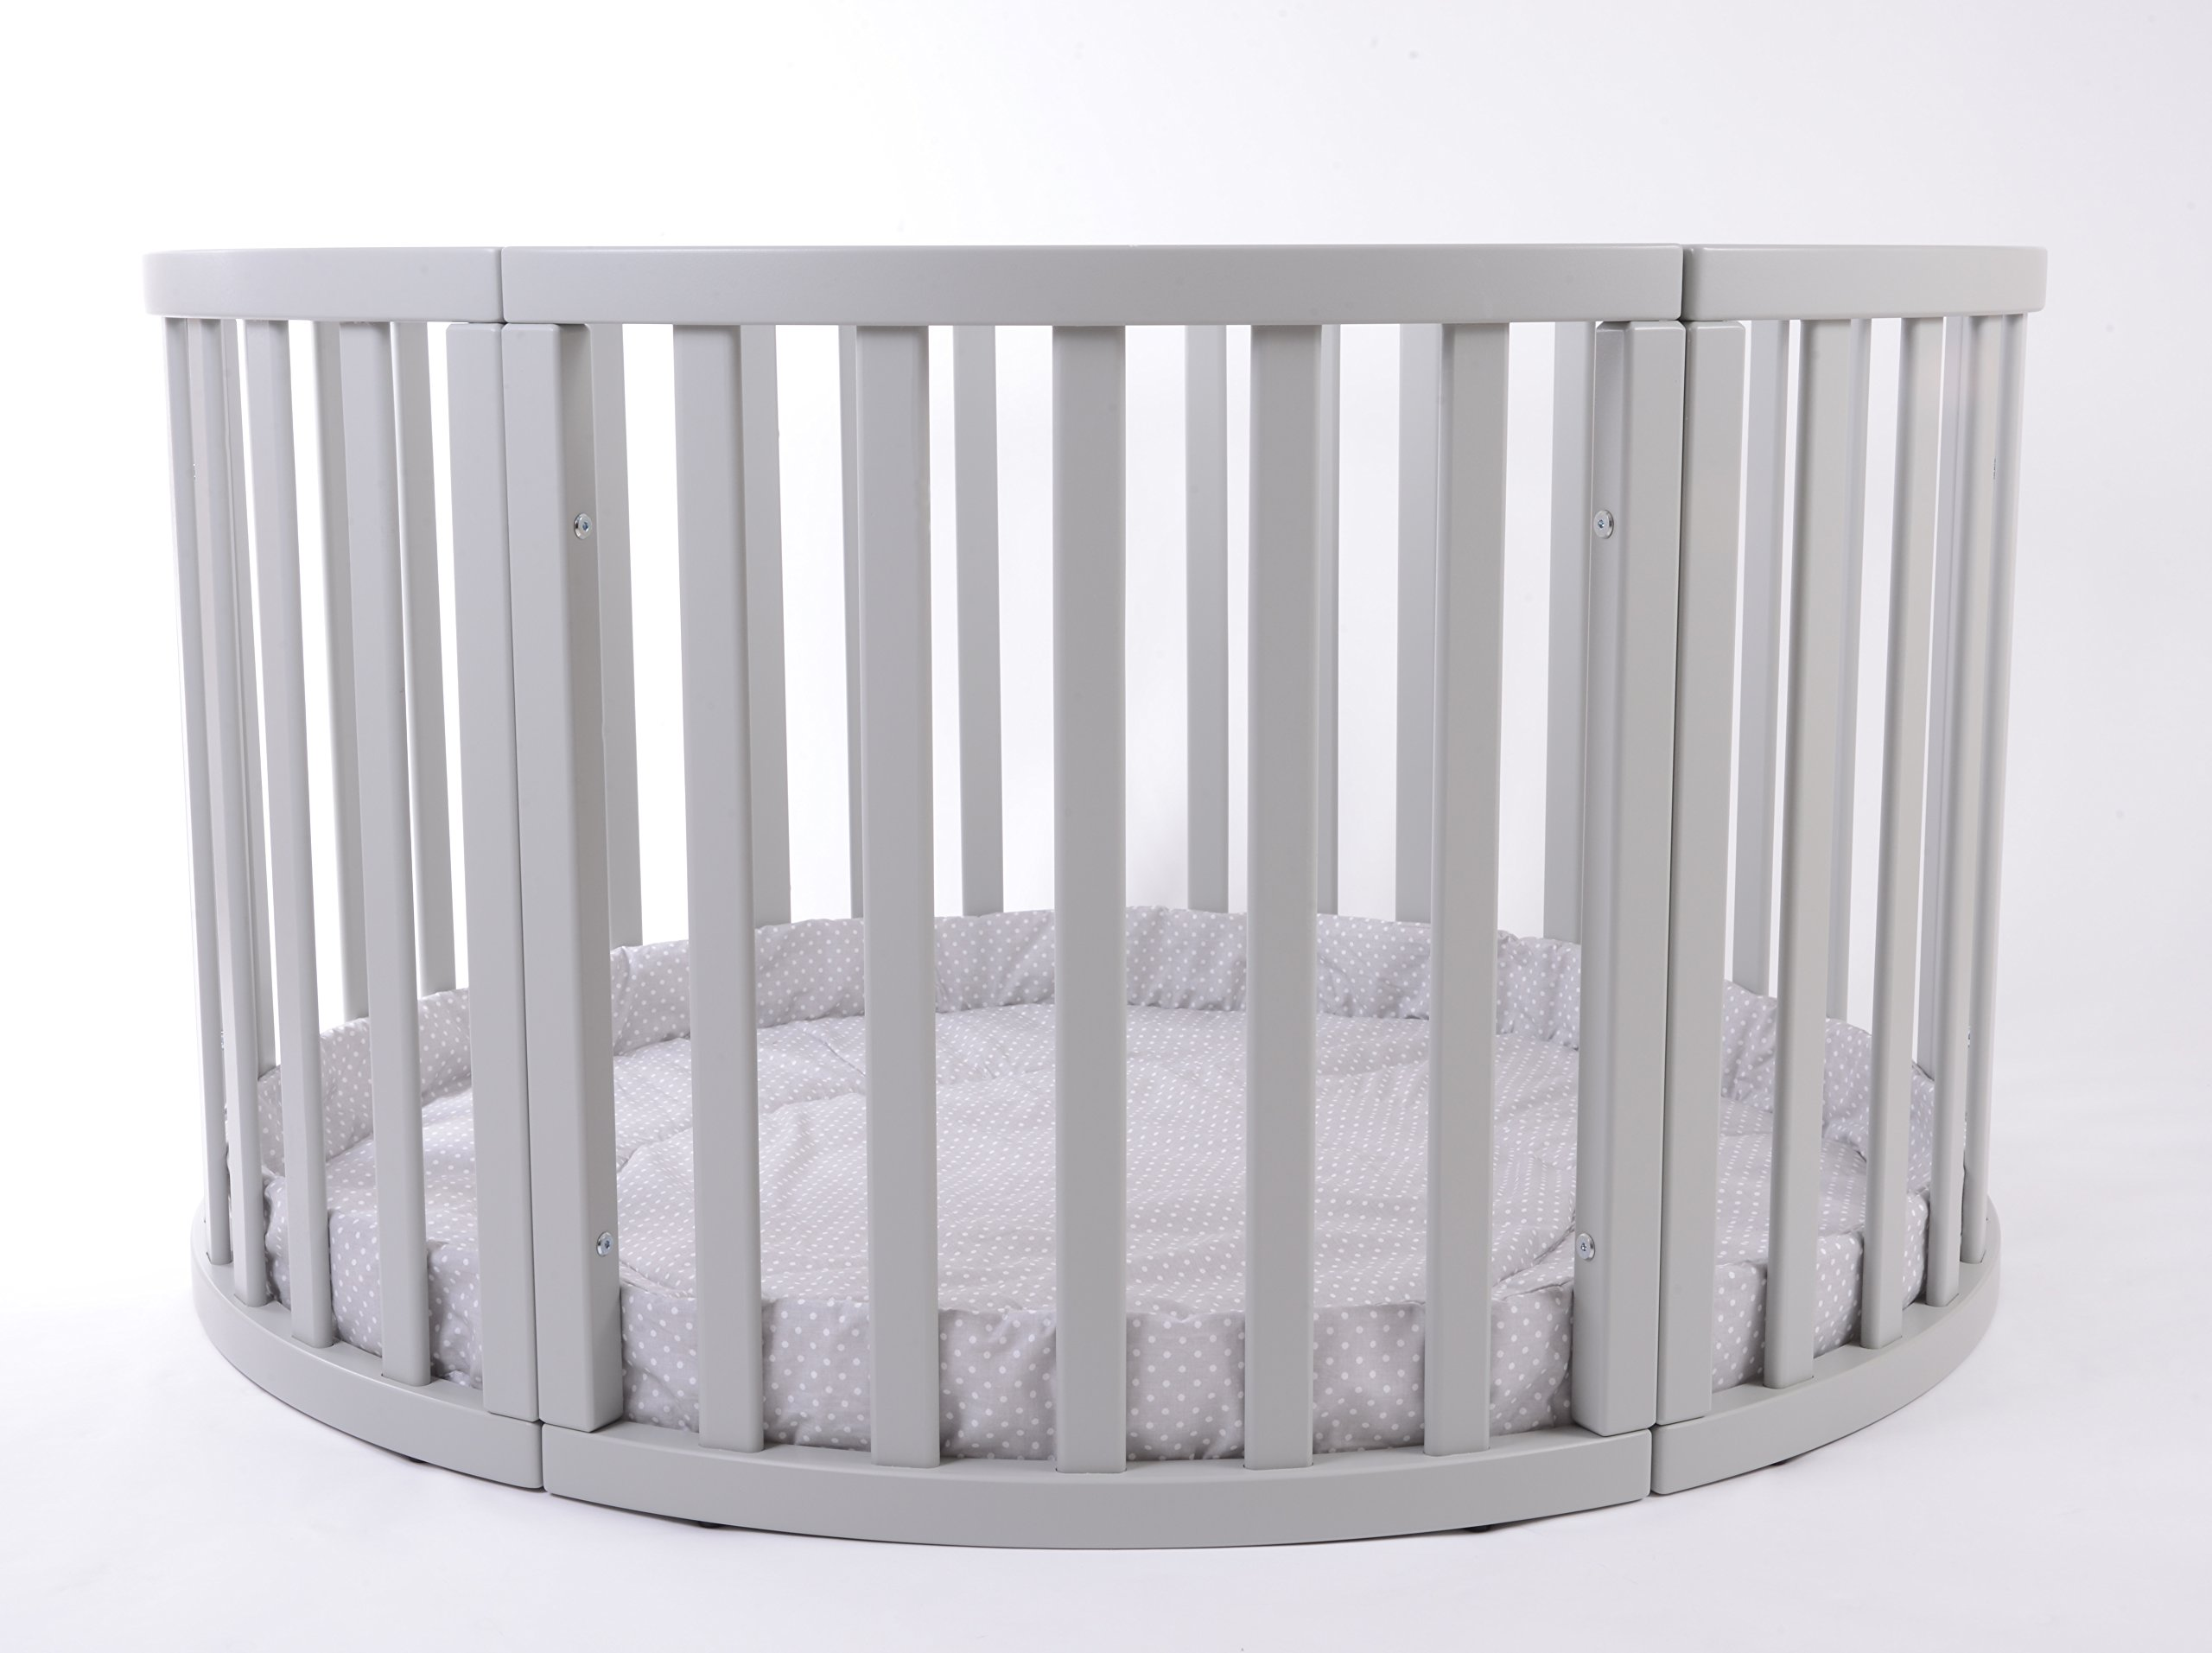 MJmark Round PLAYPEN APOLLO QUATTRO VERY LARGE Wooden play pen with play-mat SALE SALE (Grey Polka Dots) MJmark Height 70 cm approx; Ø 120cm including Playmat made from solid hard wood (Birch) 3